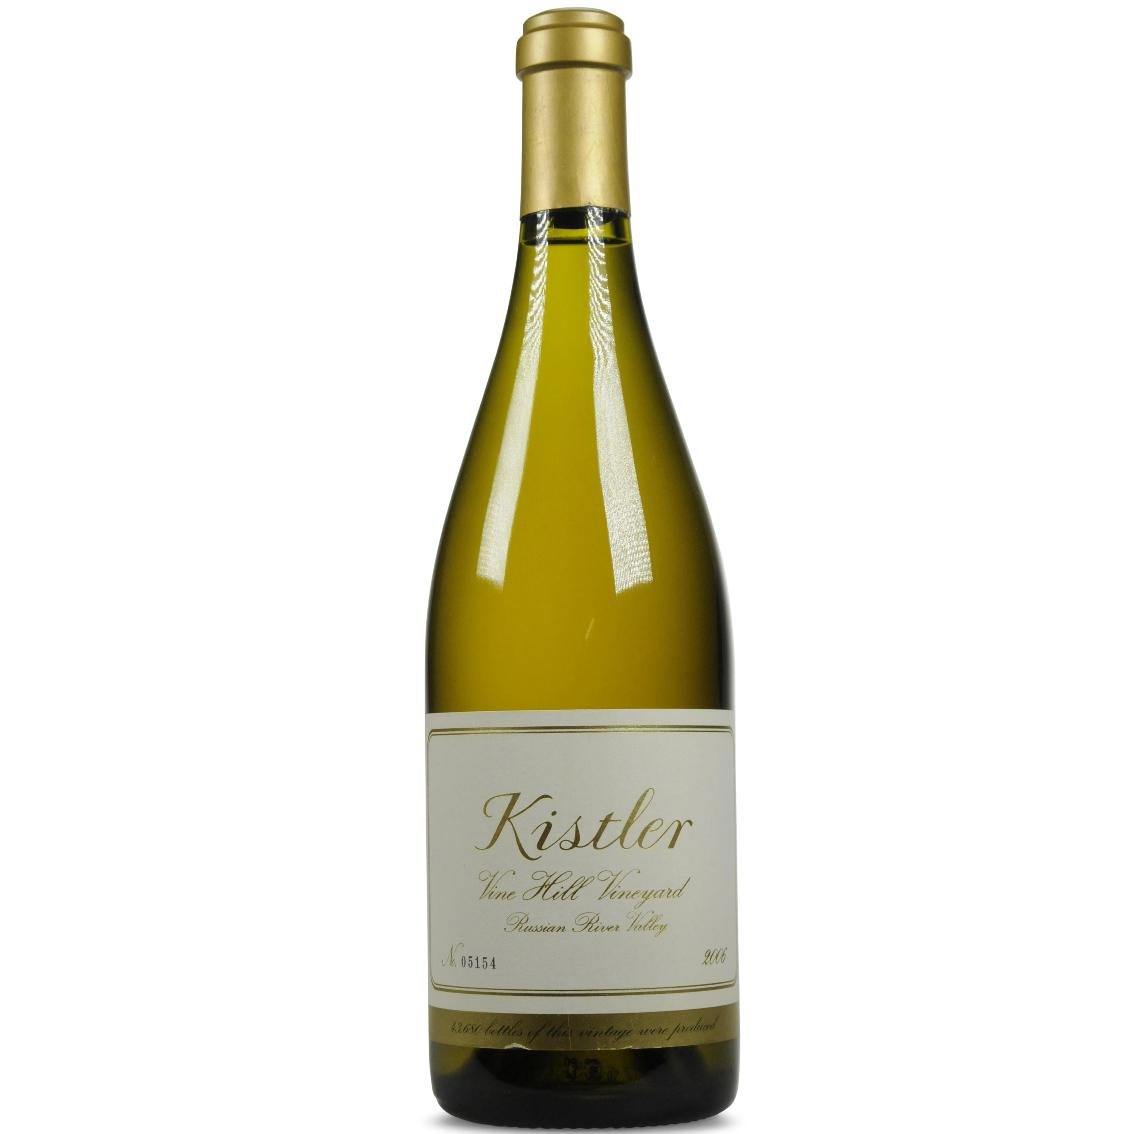 "2002 Kistler Chardonnay ""Vine Hill Vineyards"" - Russian River Valley"